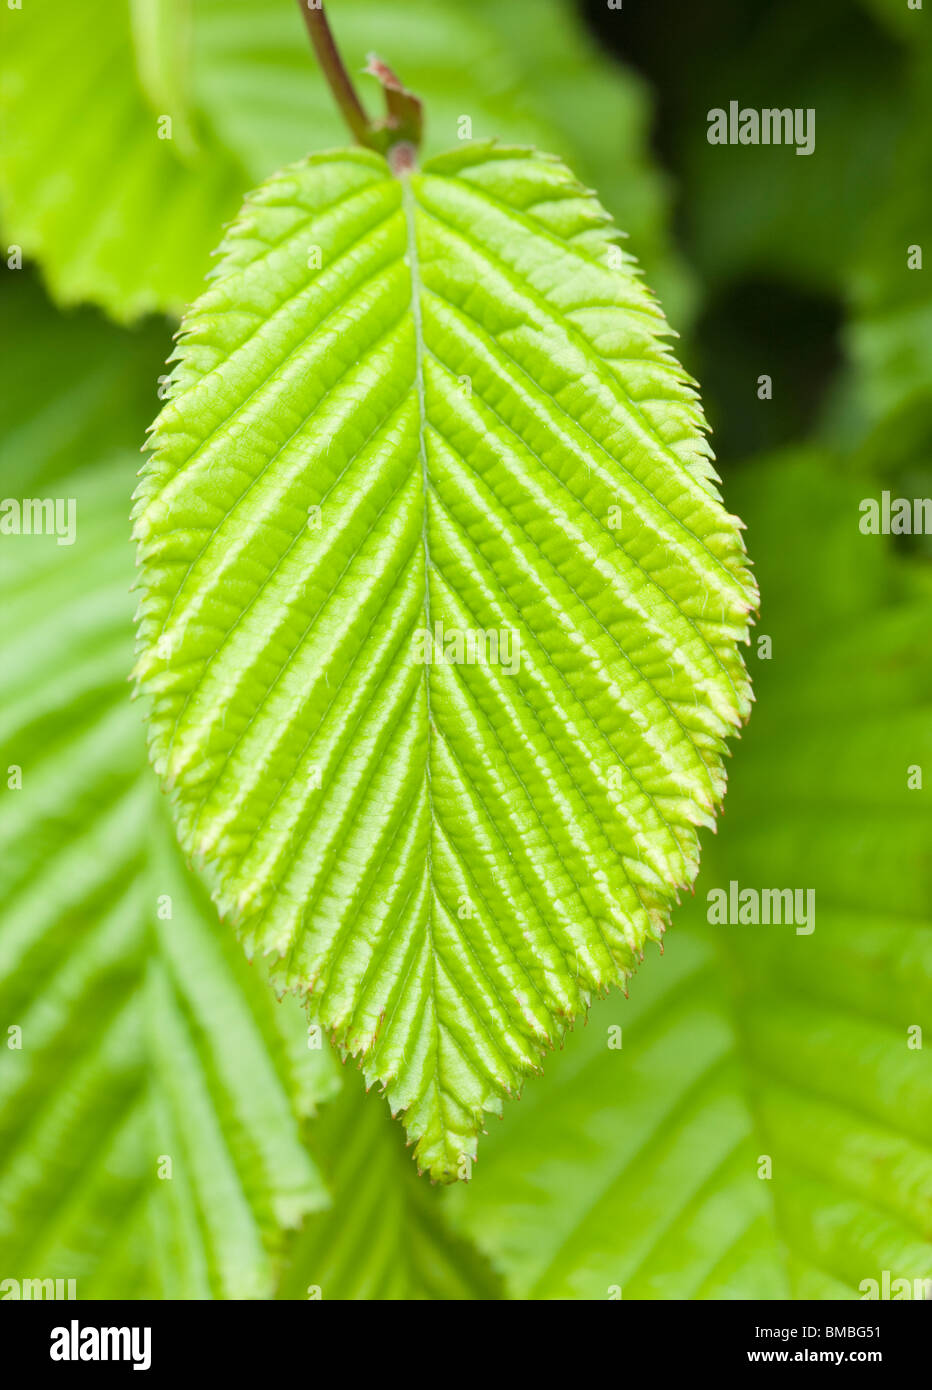 Feuille de charme au printemps, UK. Carpinus betulus. Photo Stock